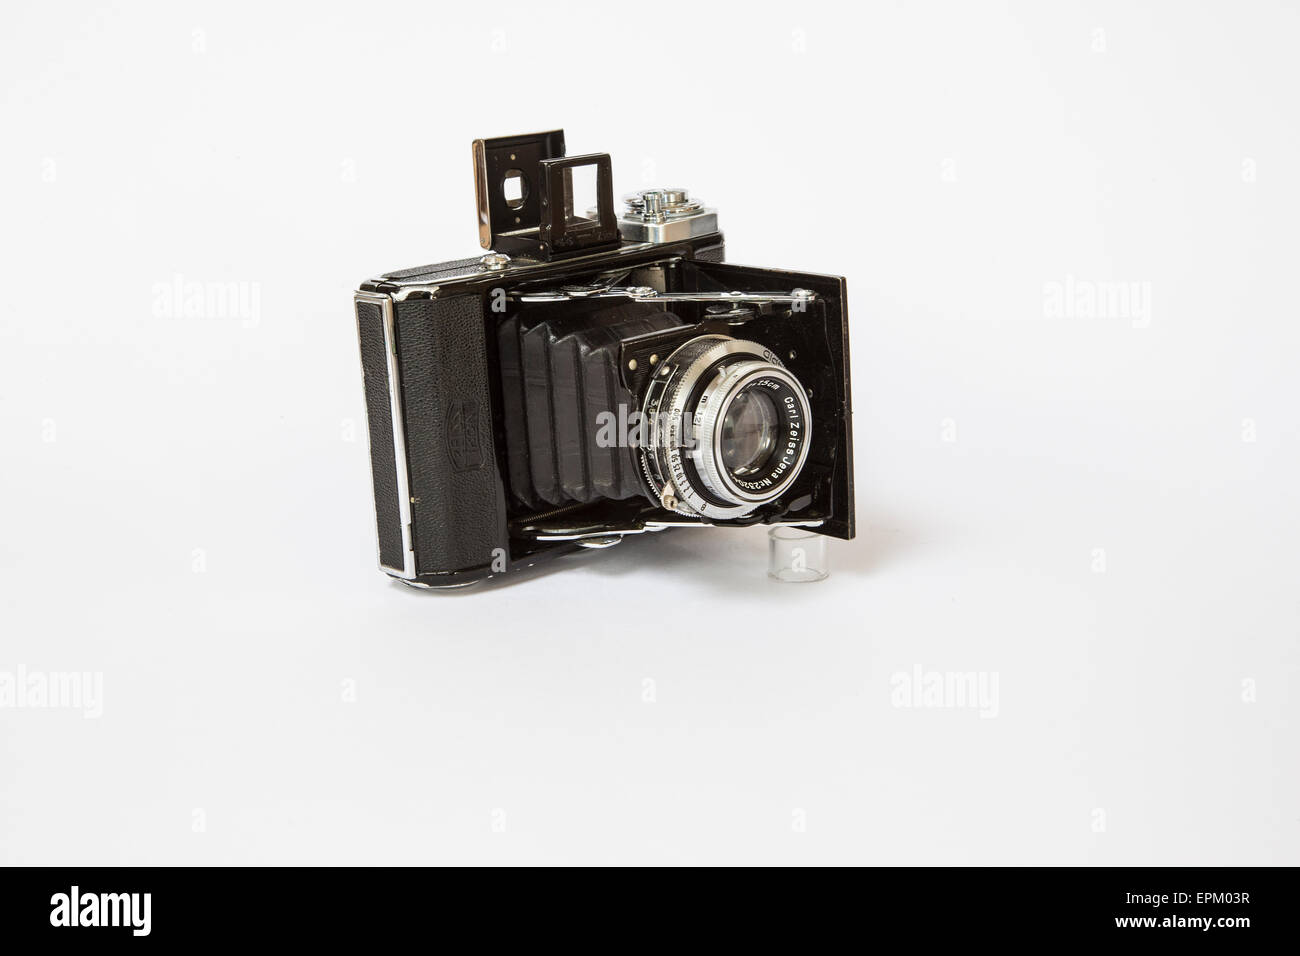 Zeiss Icon Ikonta 521 German camera circa 1940 folding camera with viewfinder and taking 120 film - Stock Image